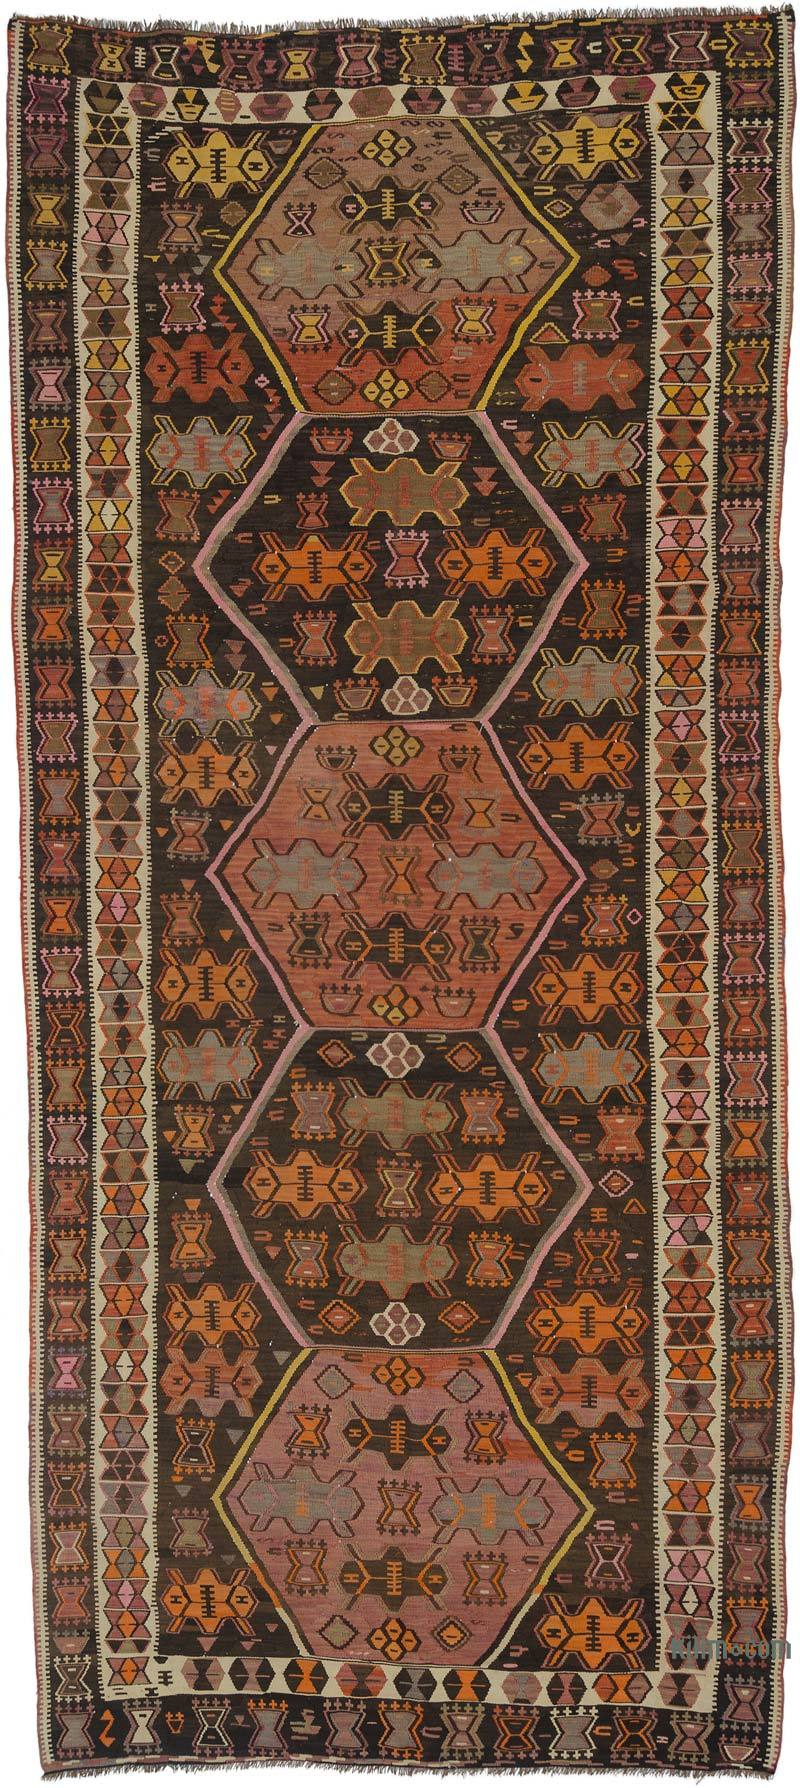 K0027768 Brown Red Vintage Kars Kilim Rug 5 5 X 12 6